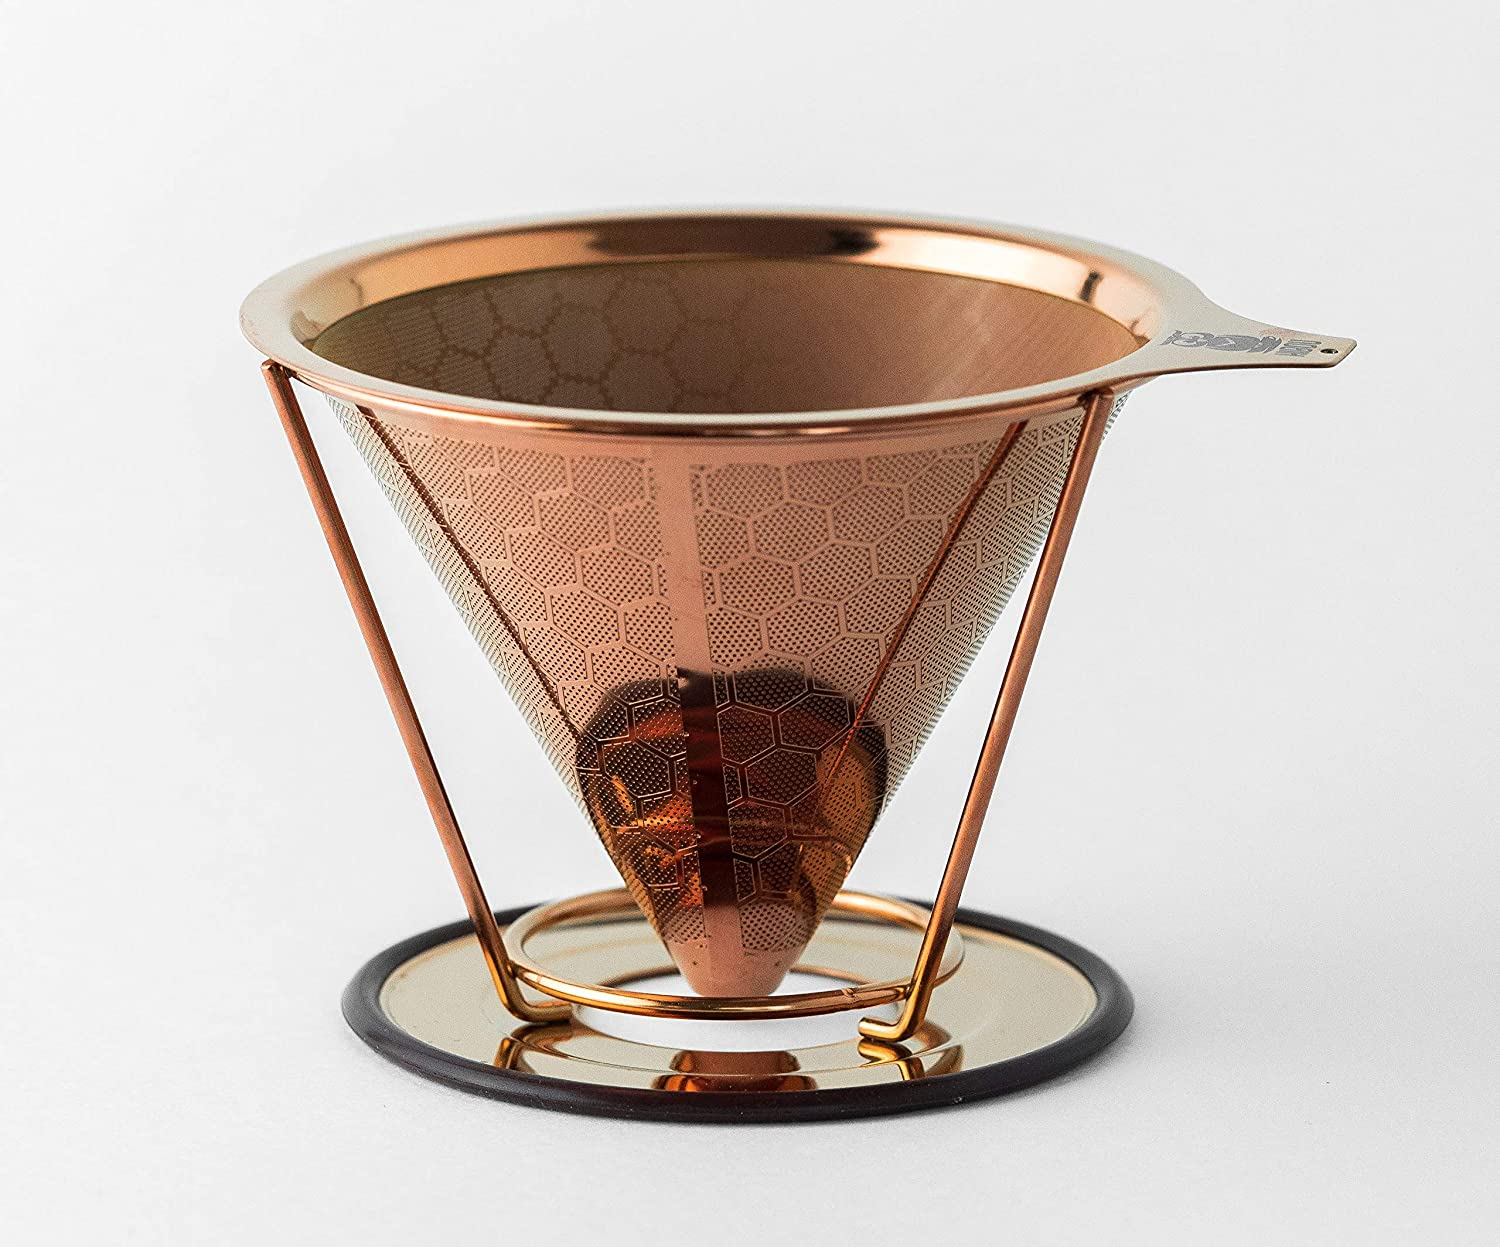 HIBOU - Copper Coated - Pour Over - Coffee Filter - Paperless - Reusable & Ecofriendly - Honeycomb Design Dripper - Coffee Brewer - Chemex - Bodum - Carafe Compatible